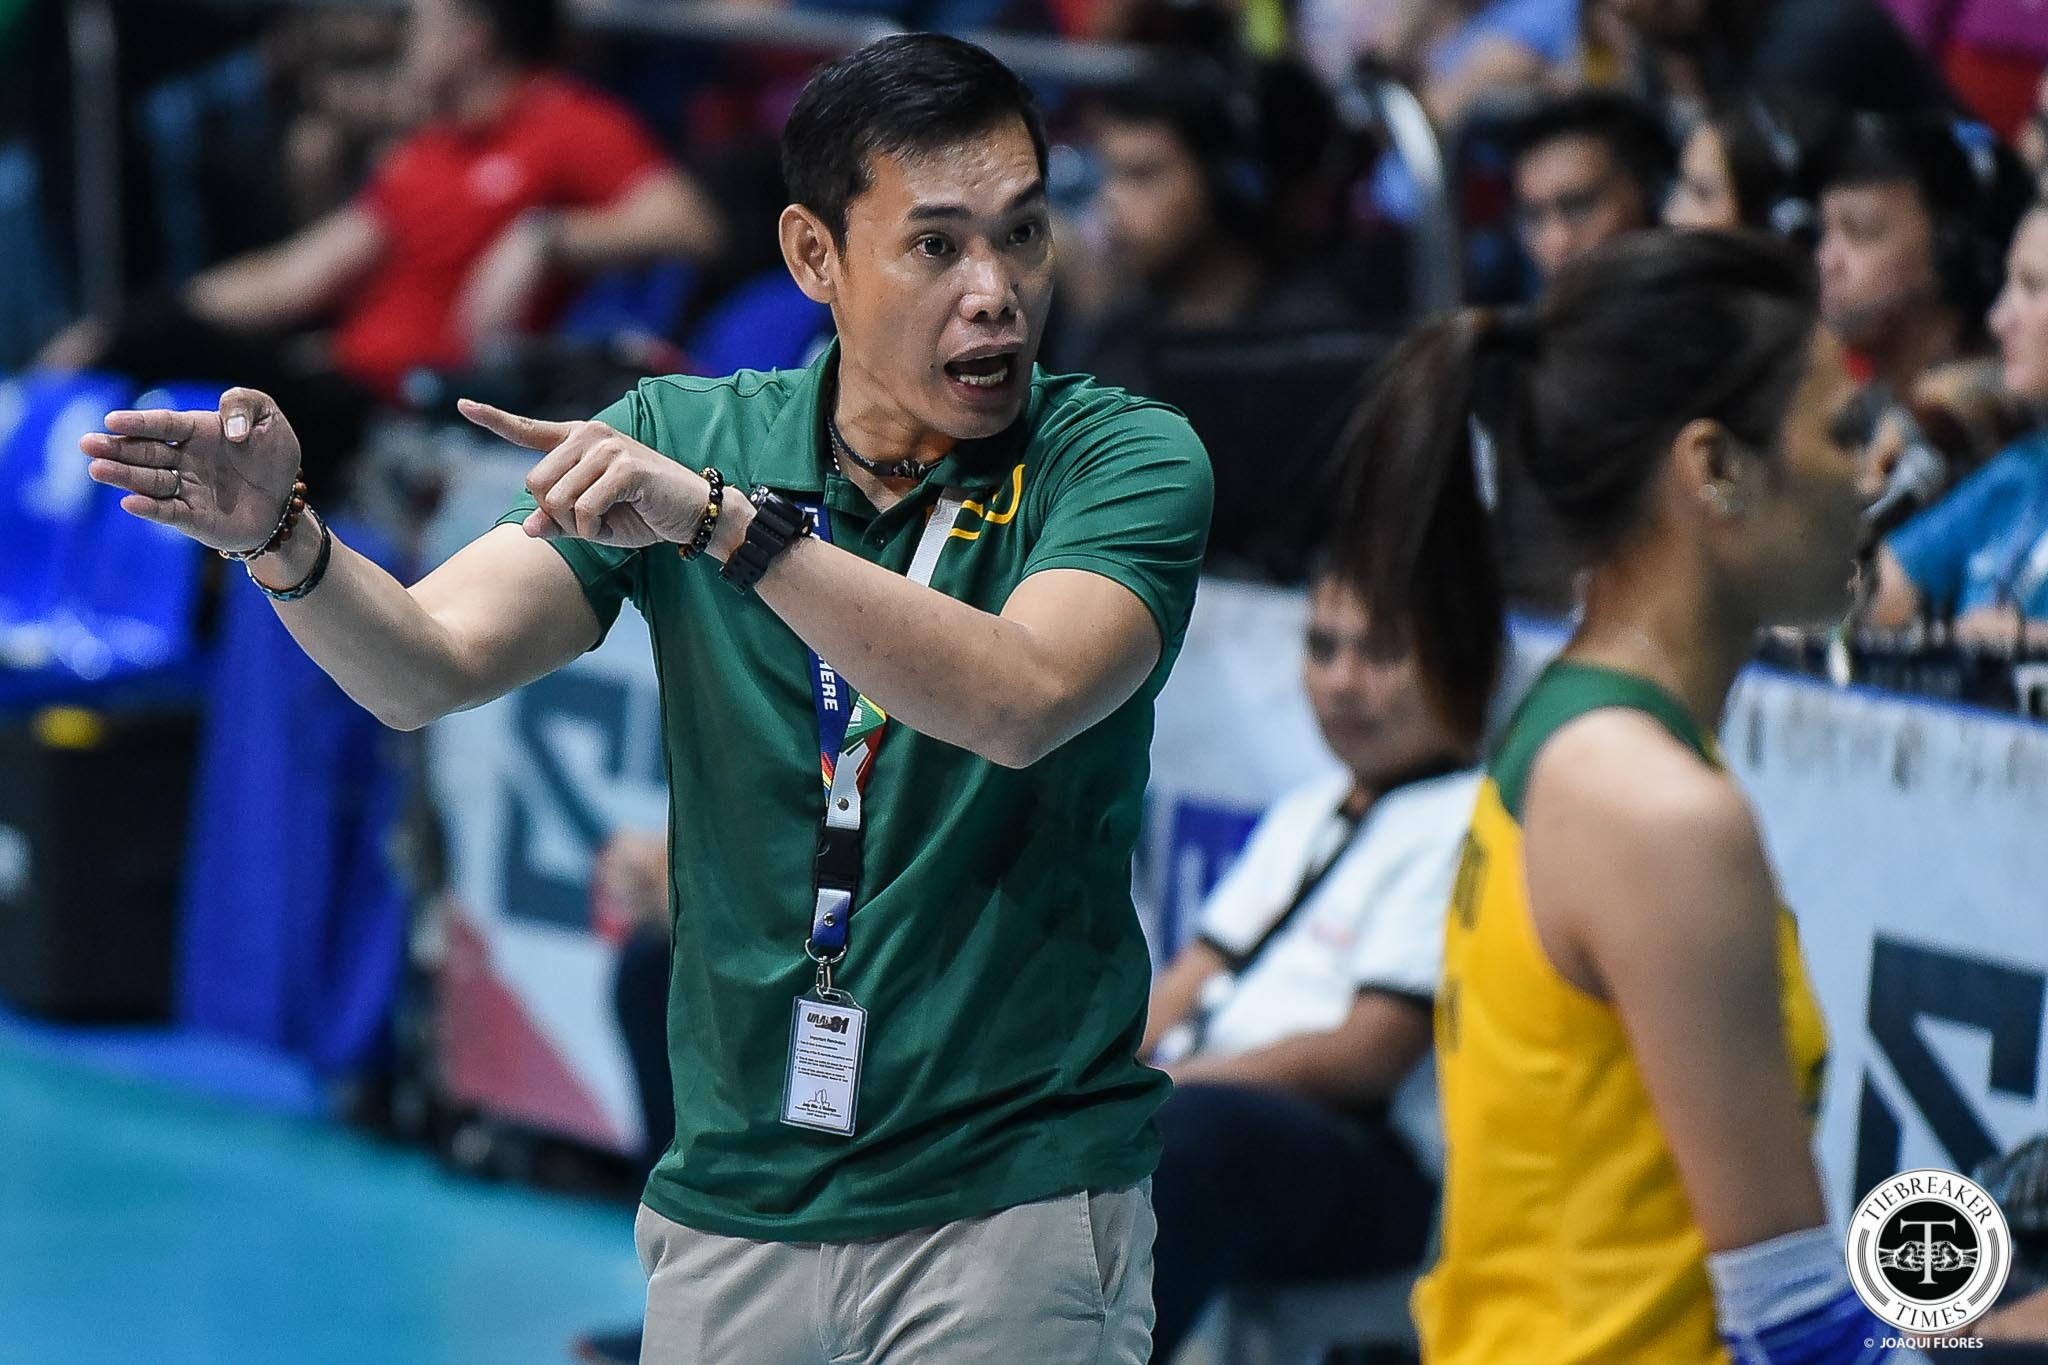 Tiebreaker Times FEU Lady Tamaraws hold players-only meeting after Ateneo loss FEU News UAAP Volleyball  UAAP Season 81 Women's Volleyball UAAP Season 81 Jerrili Malabanan FEU Women's Volleyball